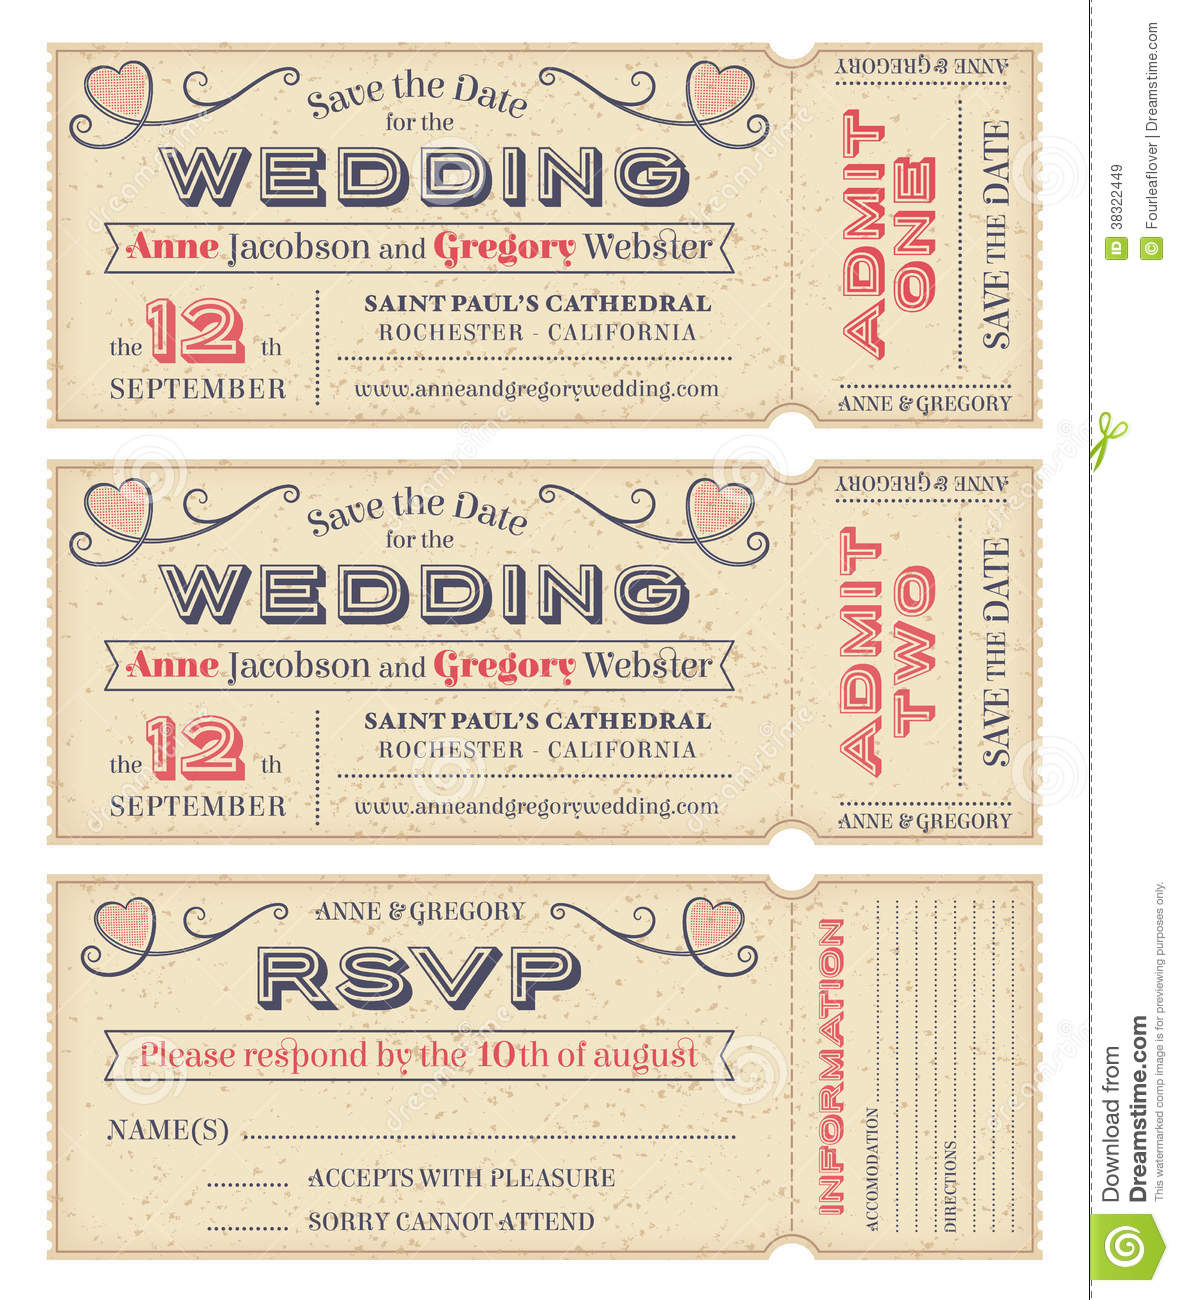 Free Drink Tickets For Weddings